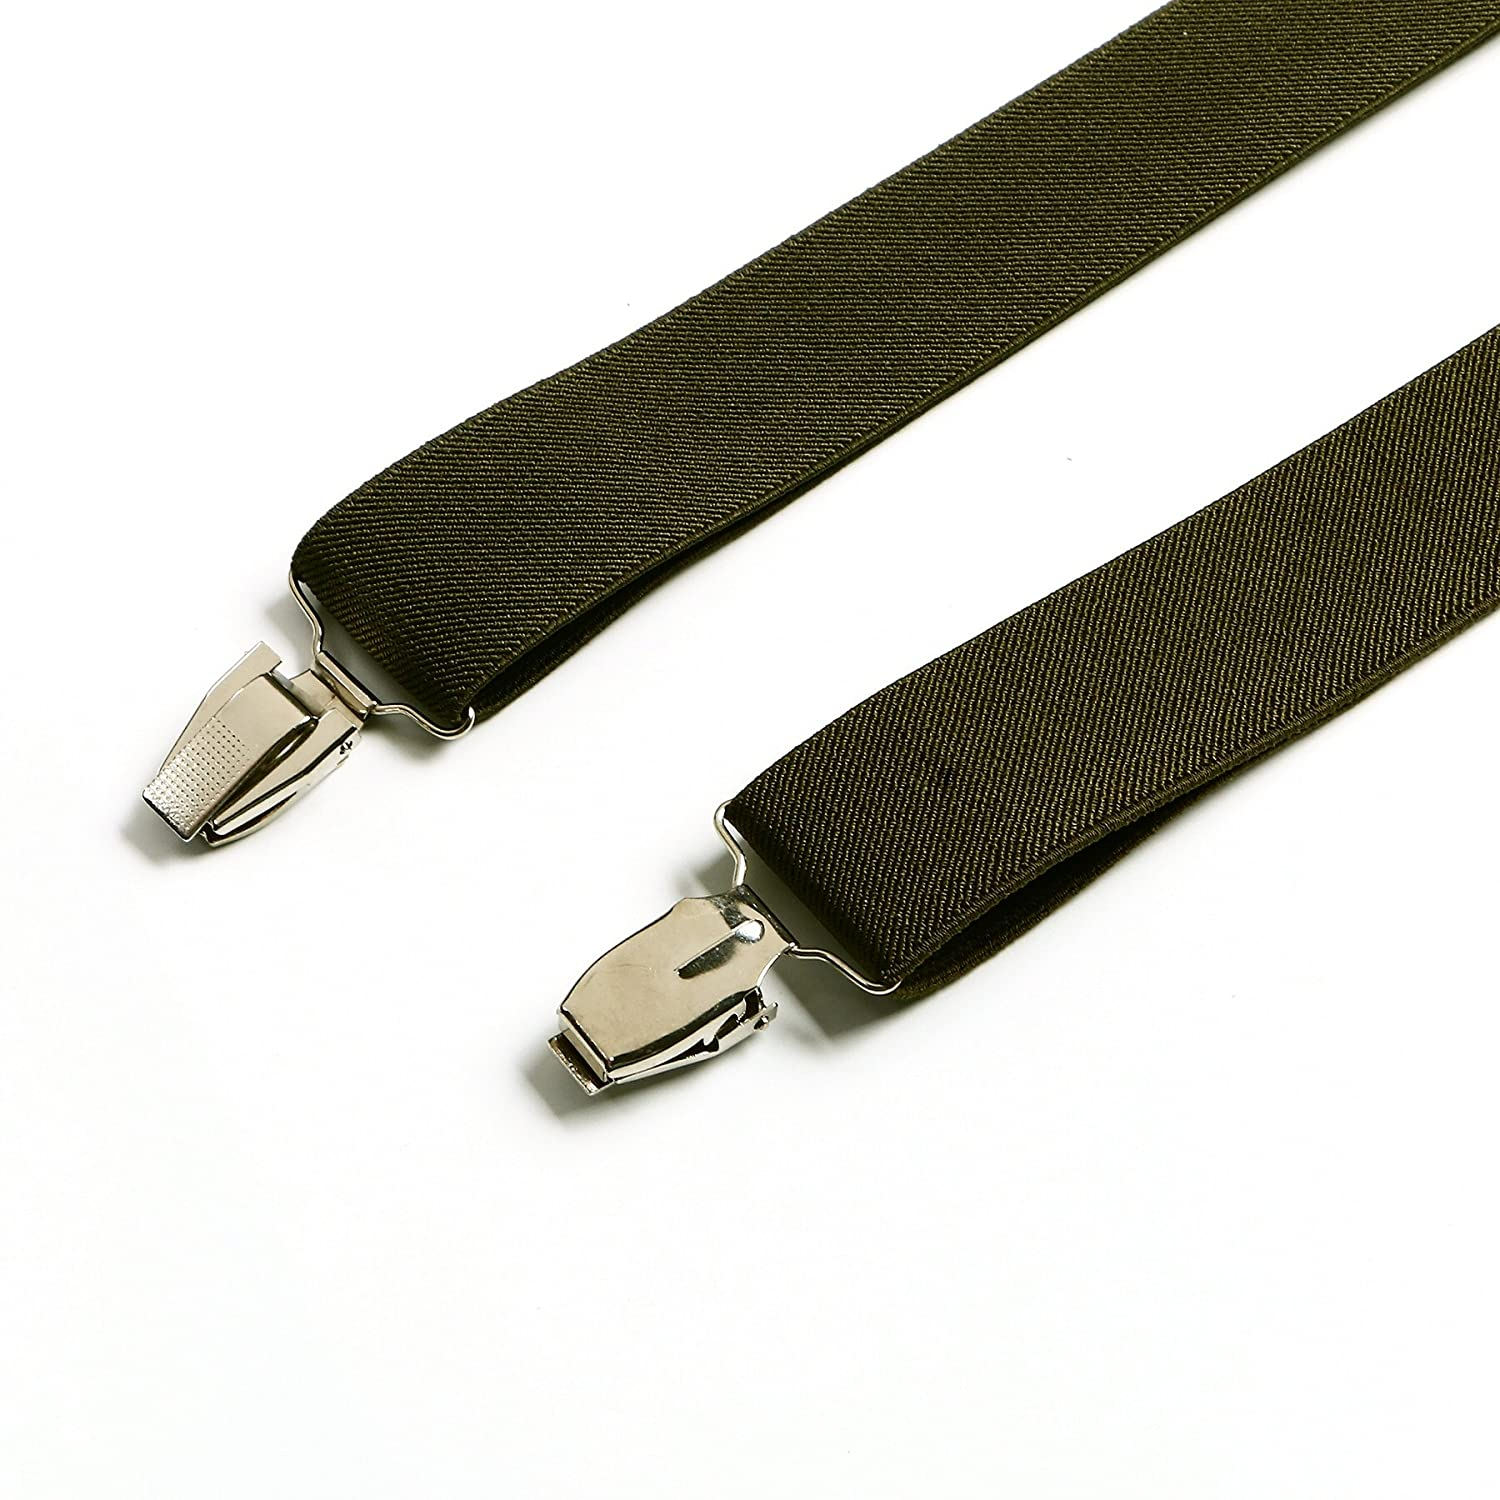 Enwis mens Suspenders Braces Polyester Elastic Clip-on Solid OliveDrab